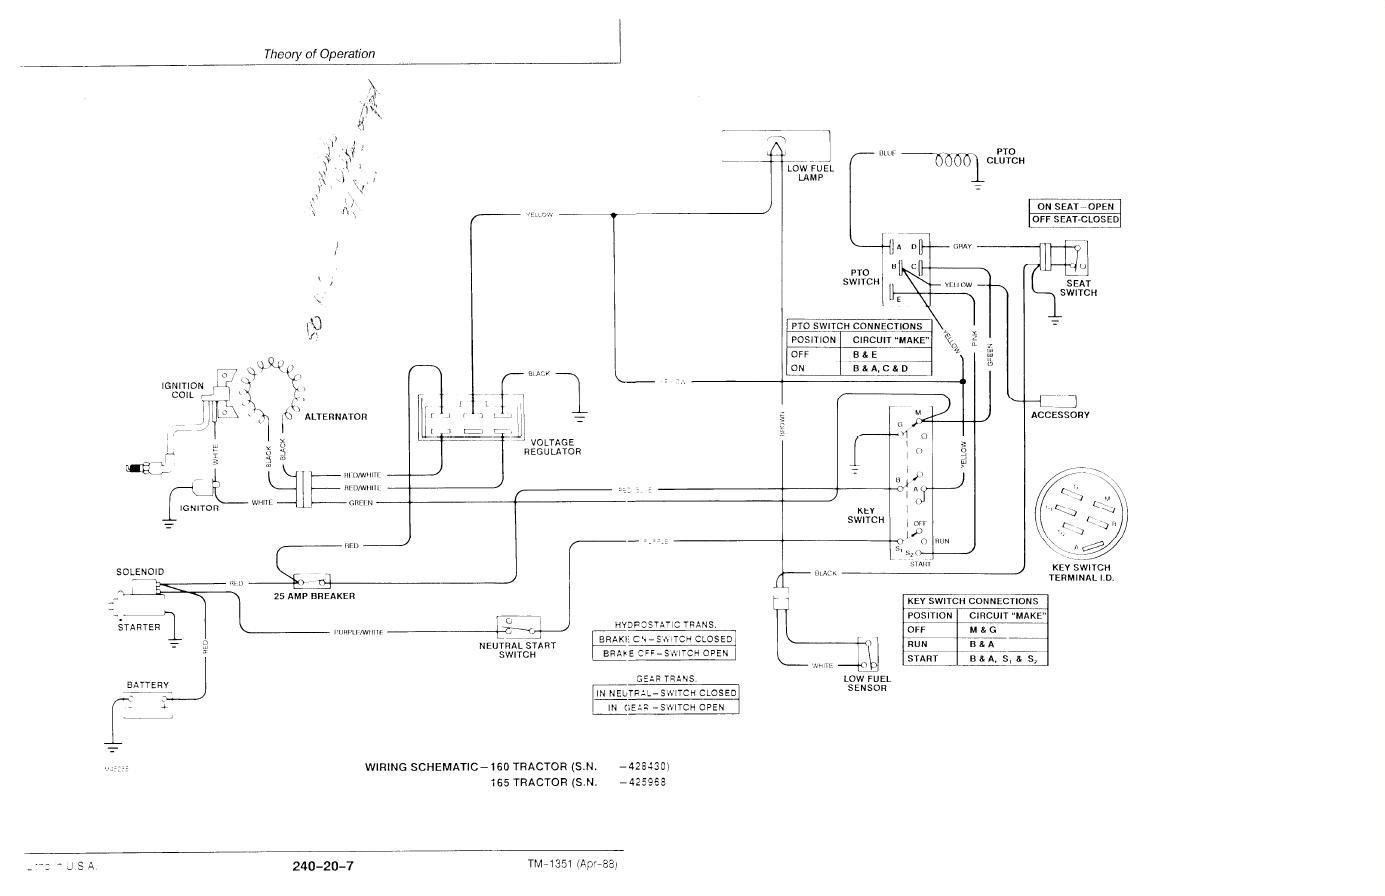 jd stx38 wiring diagram 2007 dodge caravan radio john deere library